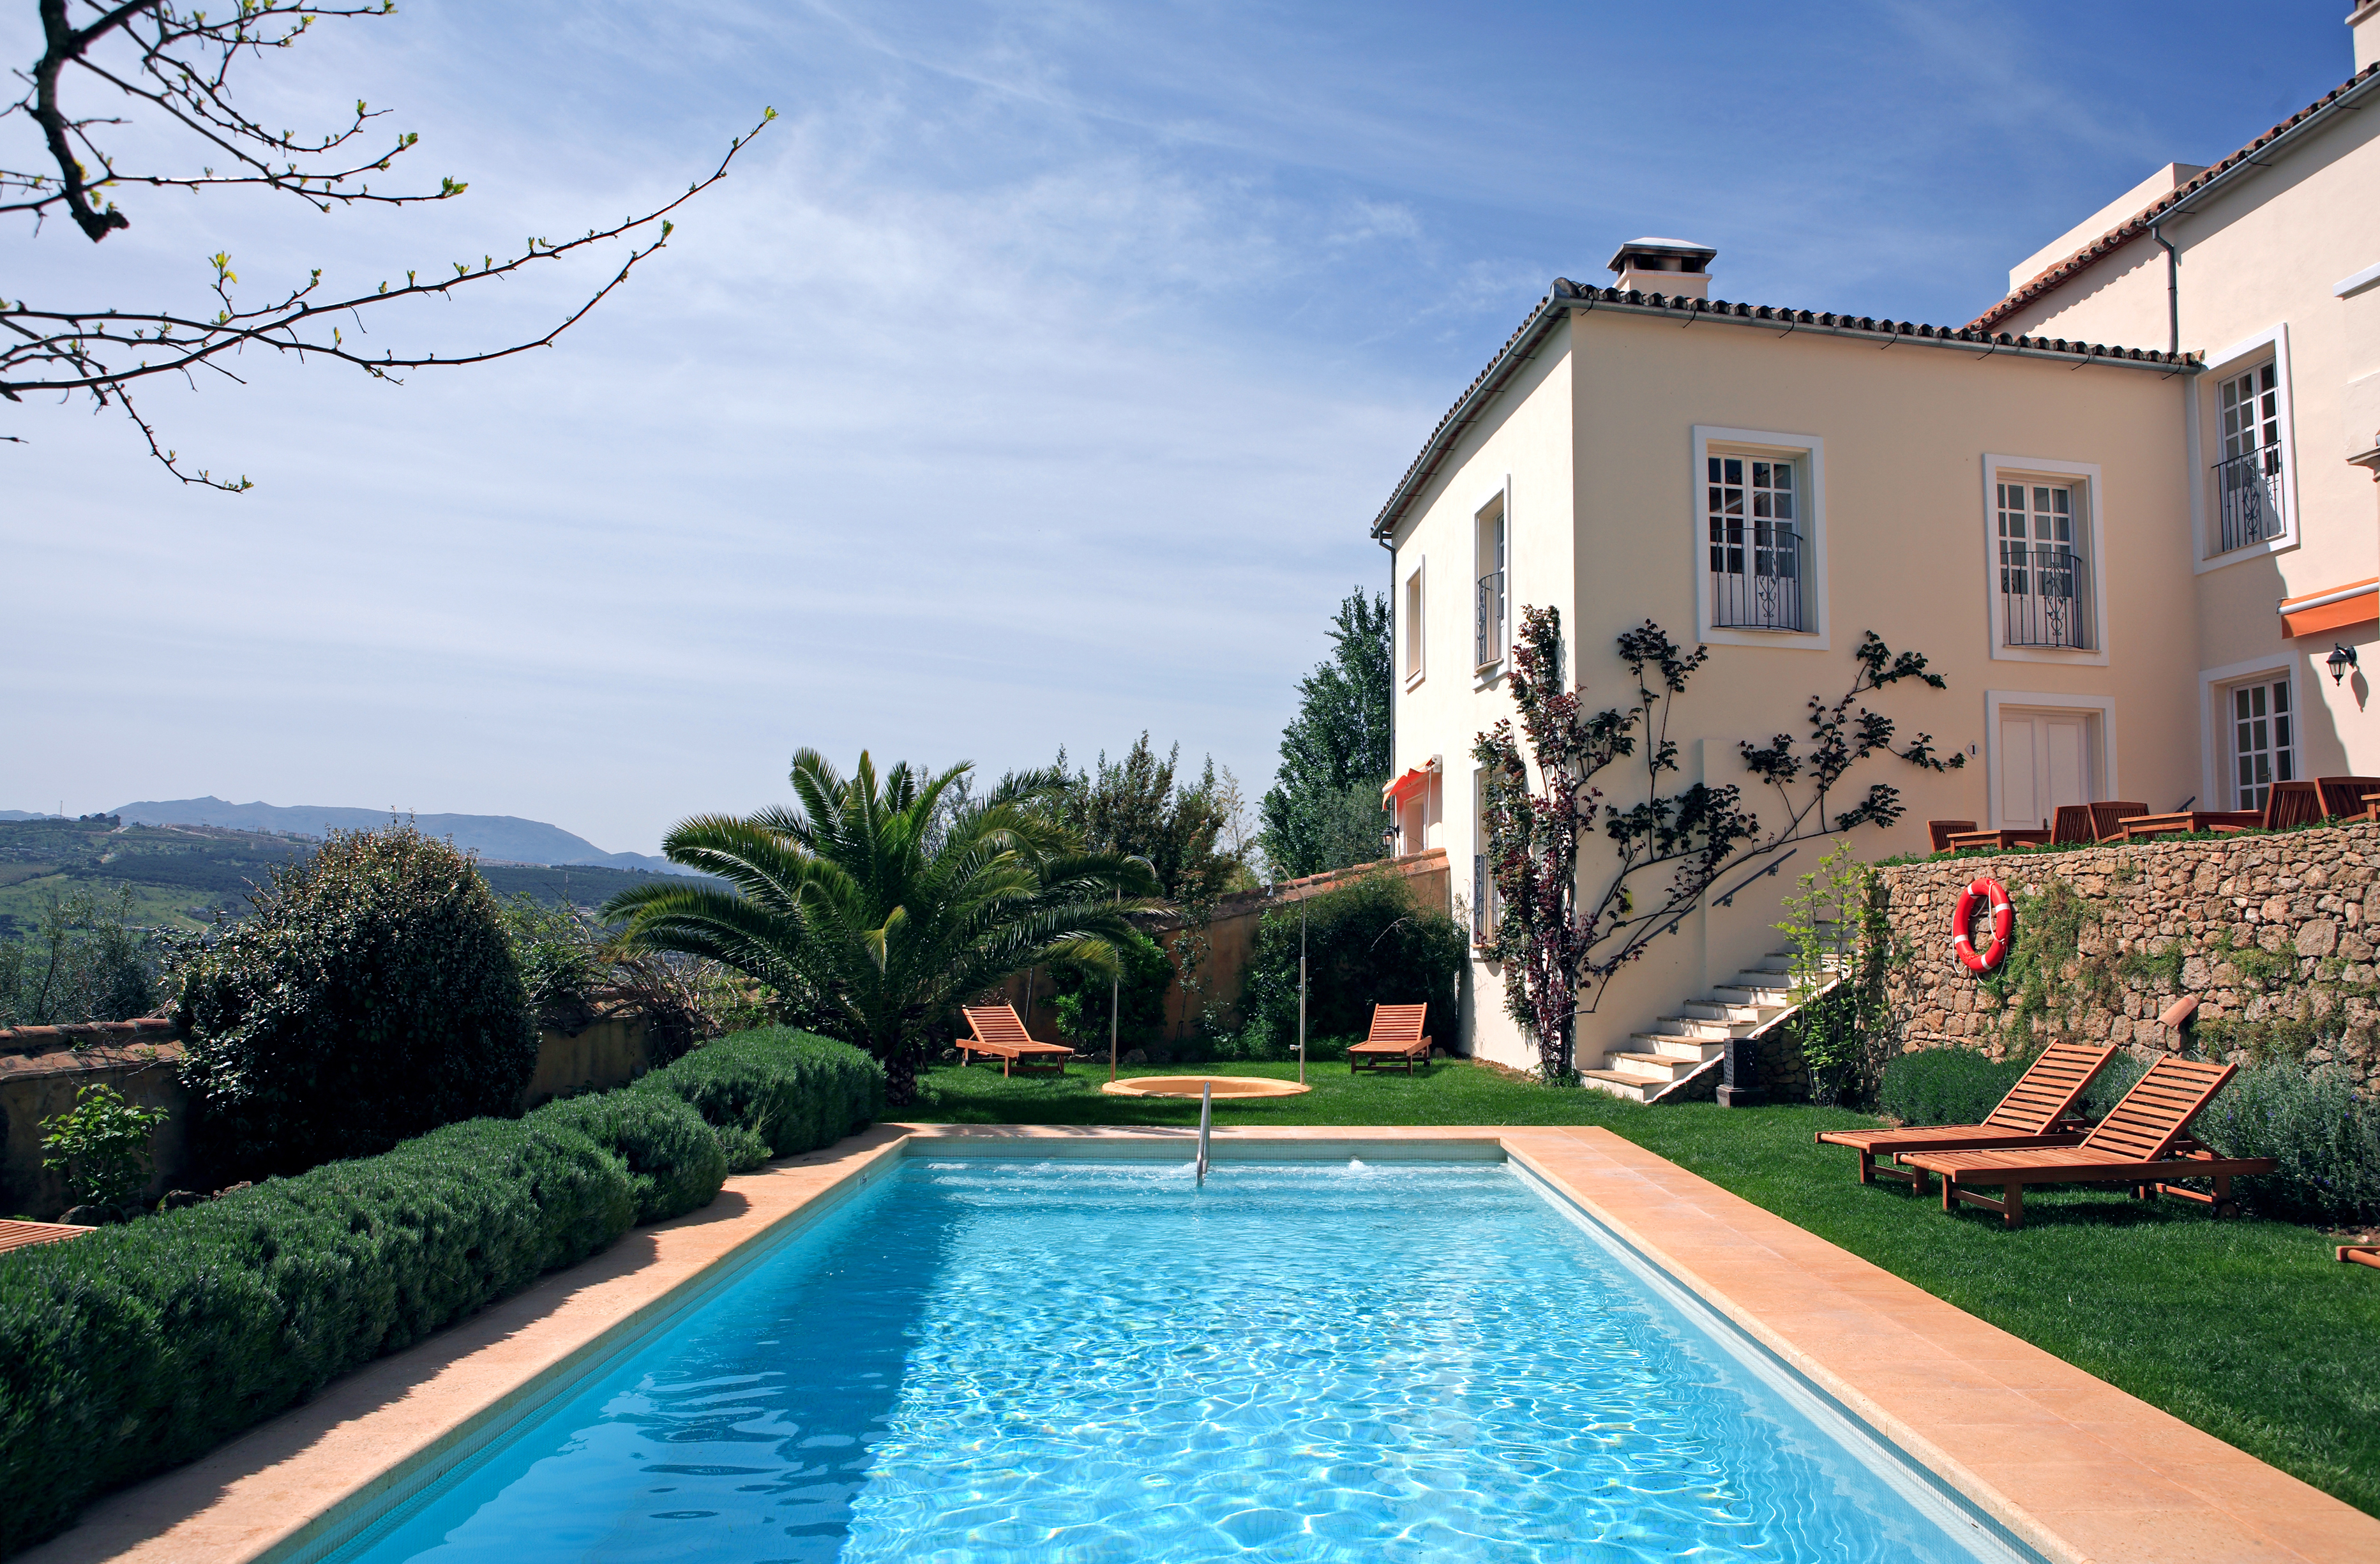 A Personal Pool Can Provide Healthy And Cleanliness- pool companies in Arizona